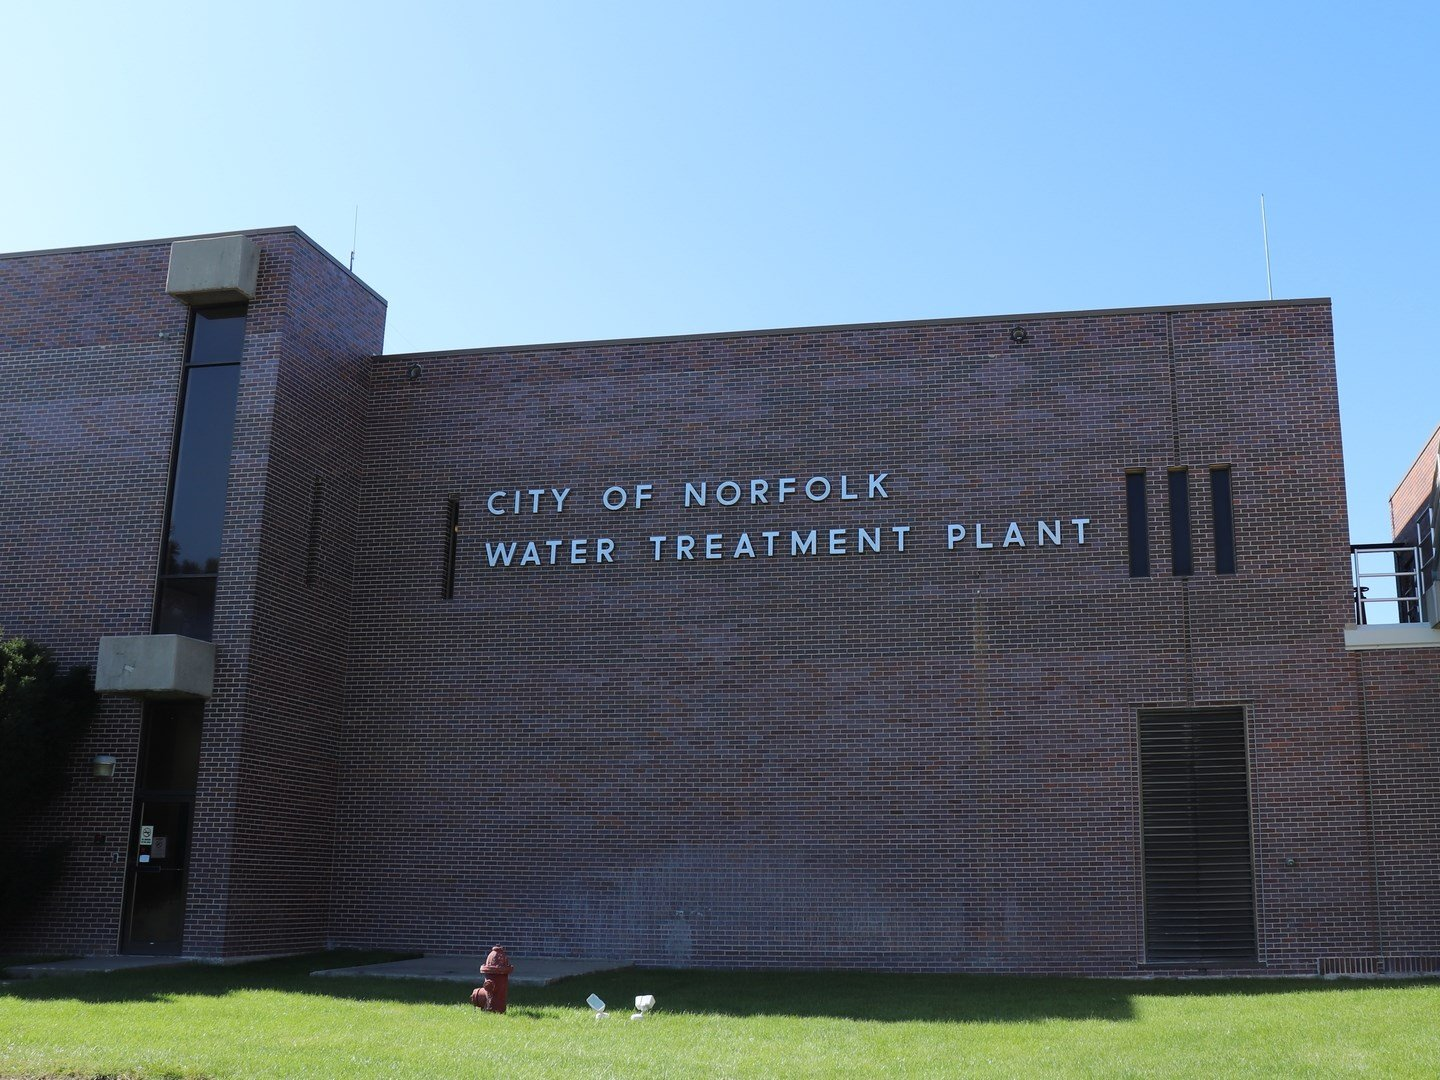 With high temperatures and low moisture, Norfolk aiming to conserve water